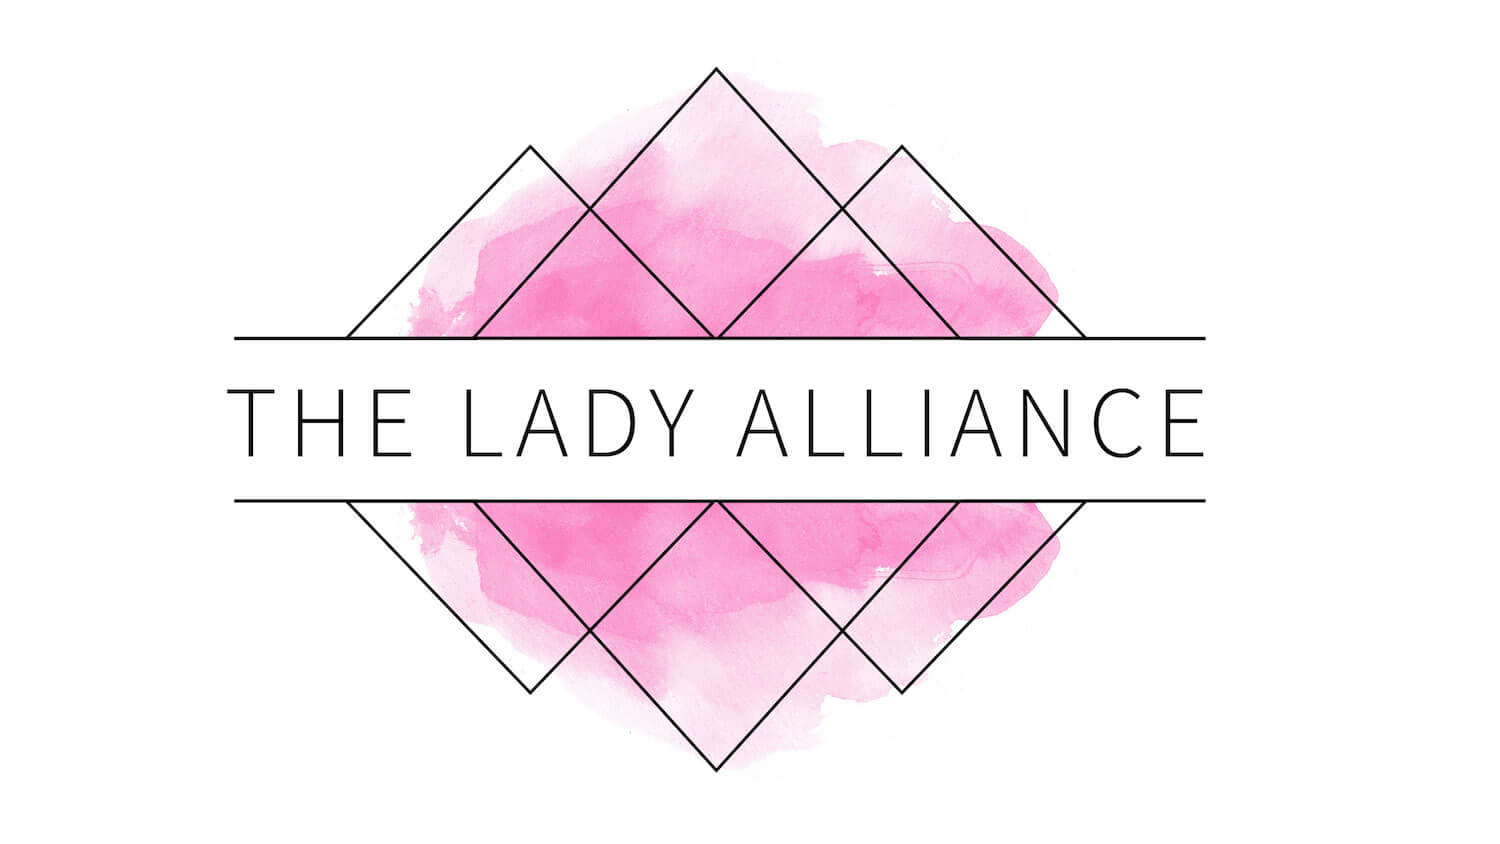 The lady Alliance - The Lady Alliance is a non-exclusive collective of outdoor women looking to break down barriers and empower ladies to get outside.Our goal is to build confidence and community through adventure. We are a highly engaged community looking to encourage and grow, share love and inspiration, and explore this world together.